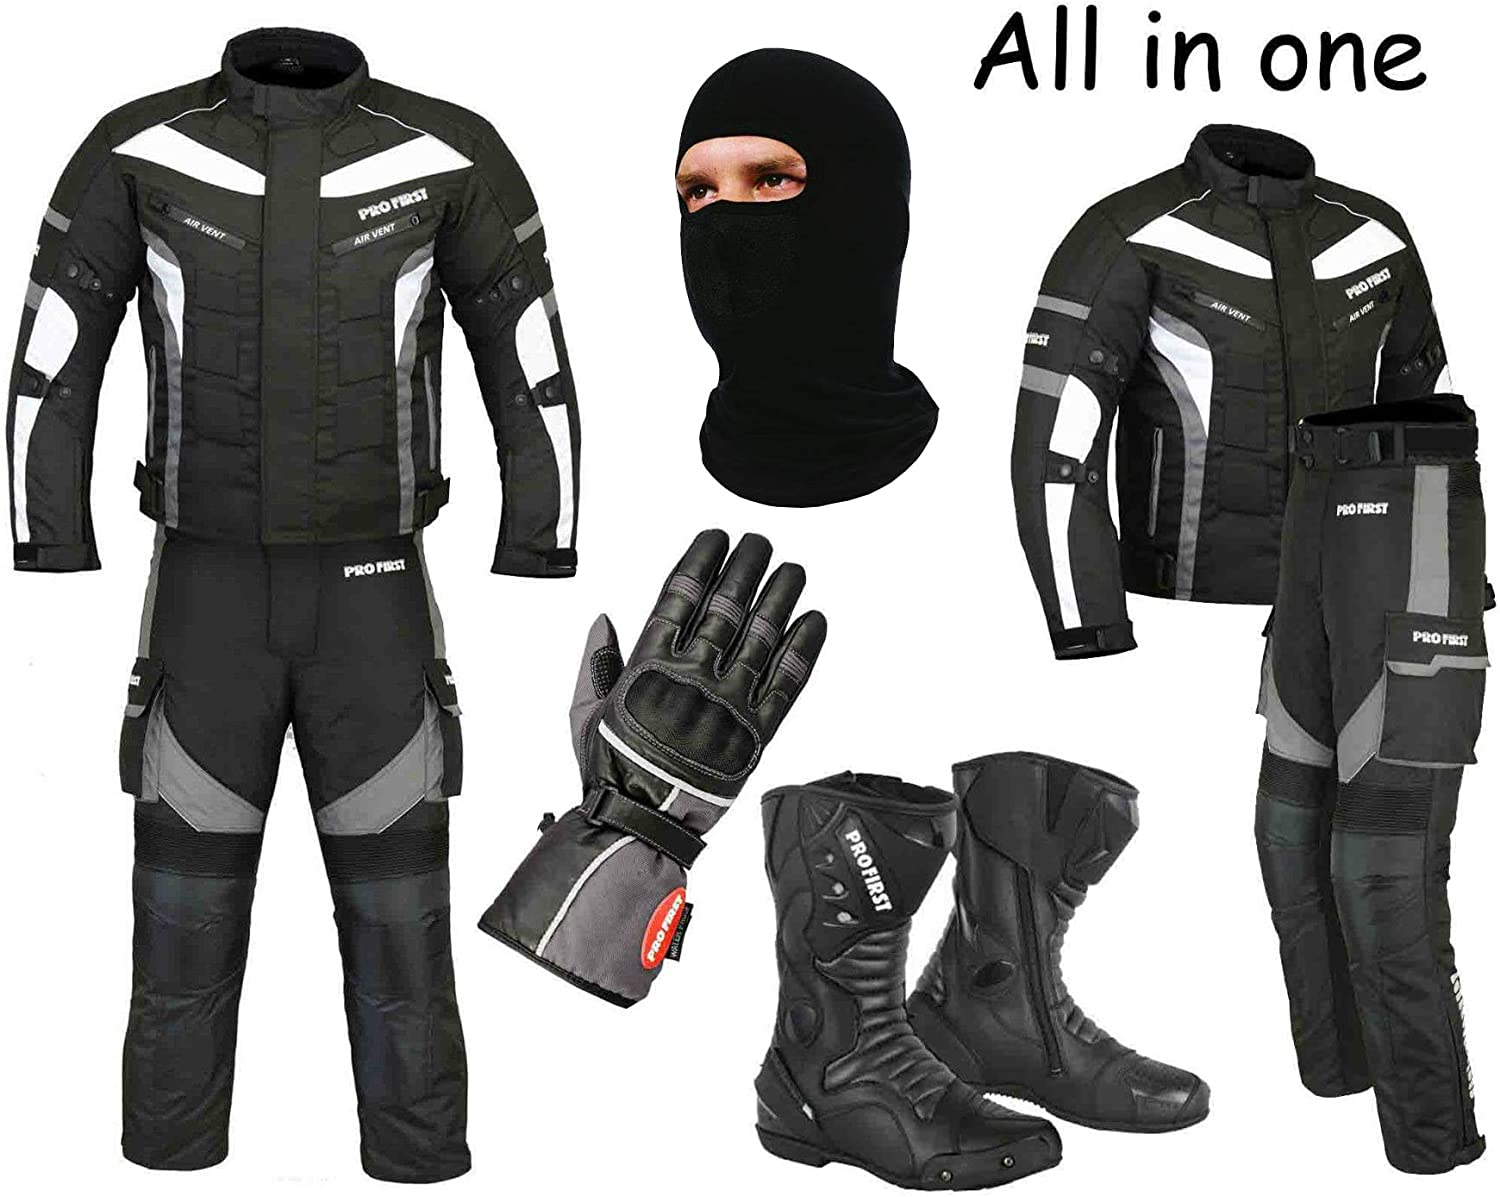 Jacket Balaclava Racing Touring Events - Gloves A Full Set of Waterproof Motorbike Motorcycle Moped 2 Piece Suit in Cordura Fabric and CE Approved Armour Trouser Grey - X-Large Boots